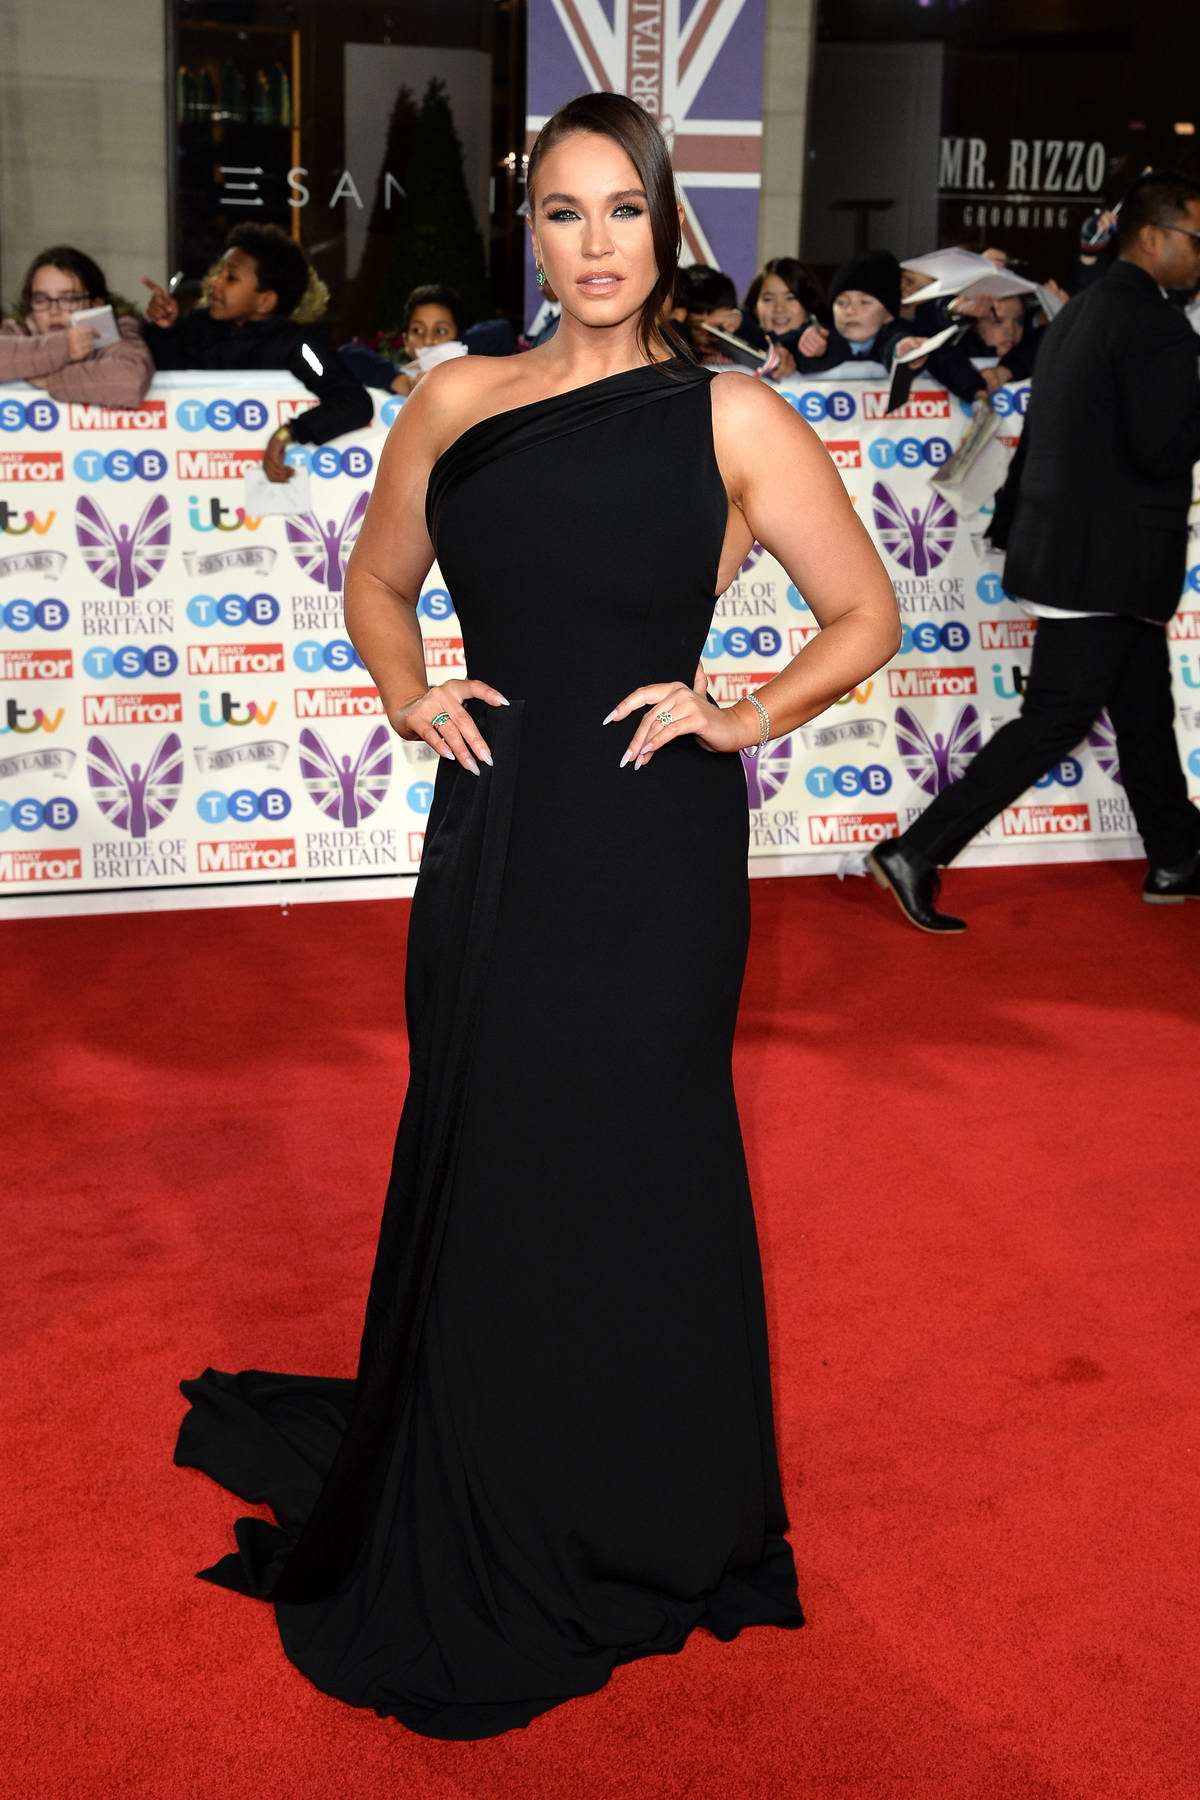 Vicky Pattison attends the Pride of Britain Awards 2019 at Grosvenor House in London, UK